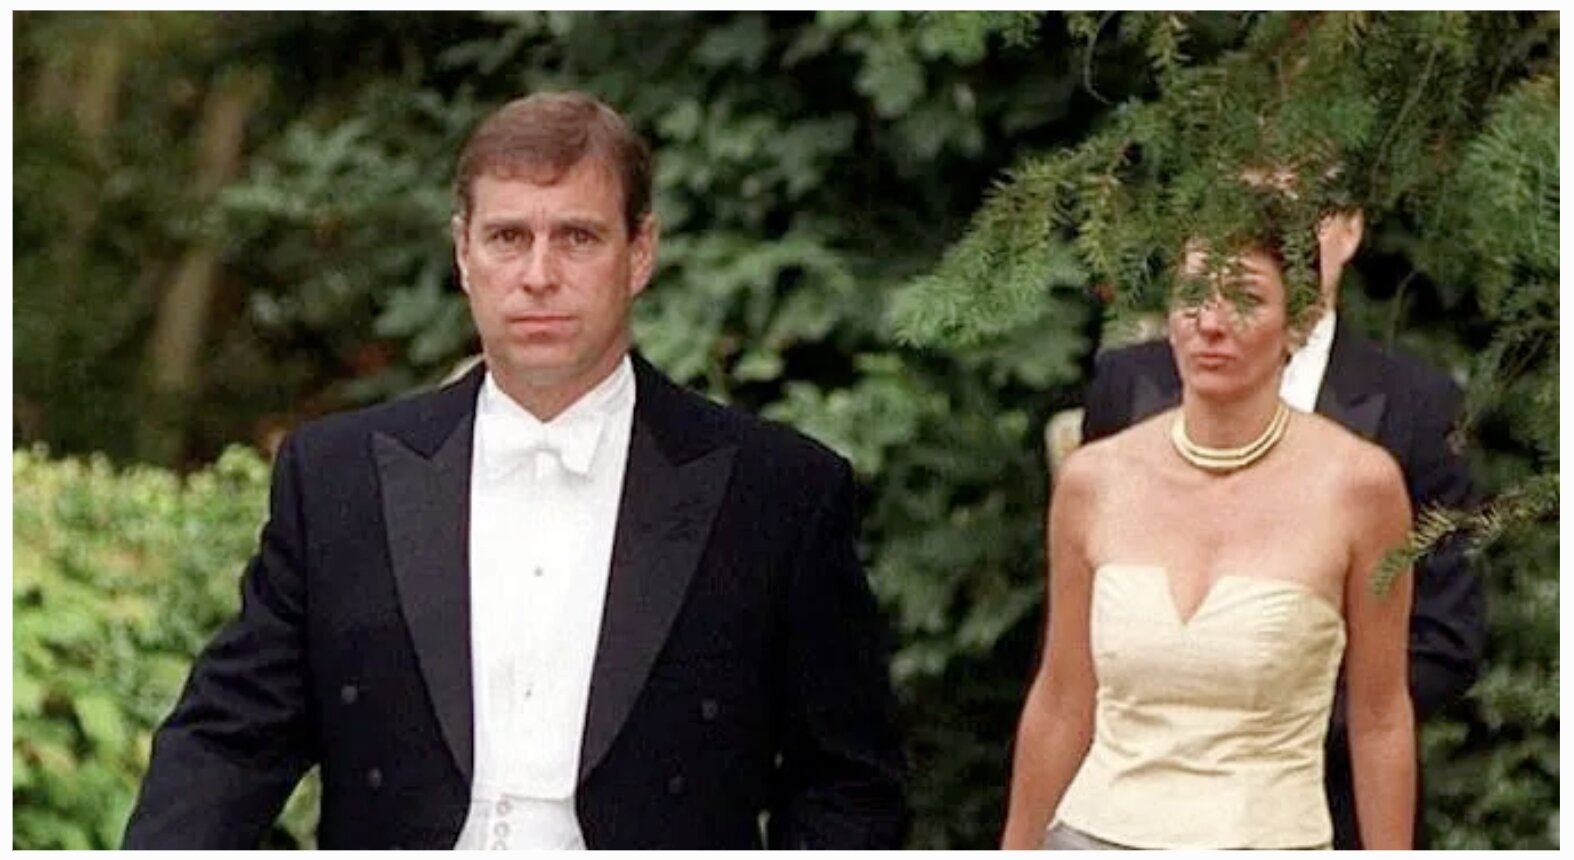 Ghislaine Maxwell Met Prince Andrew At Buckingham Palace AFTER Child Sex Trafficking Investigation Launched